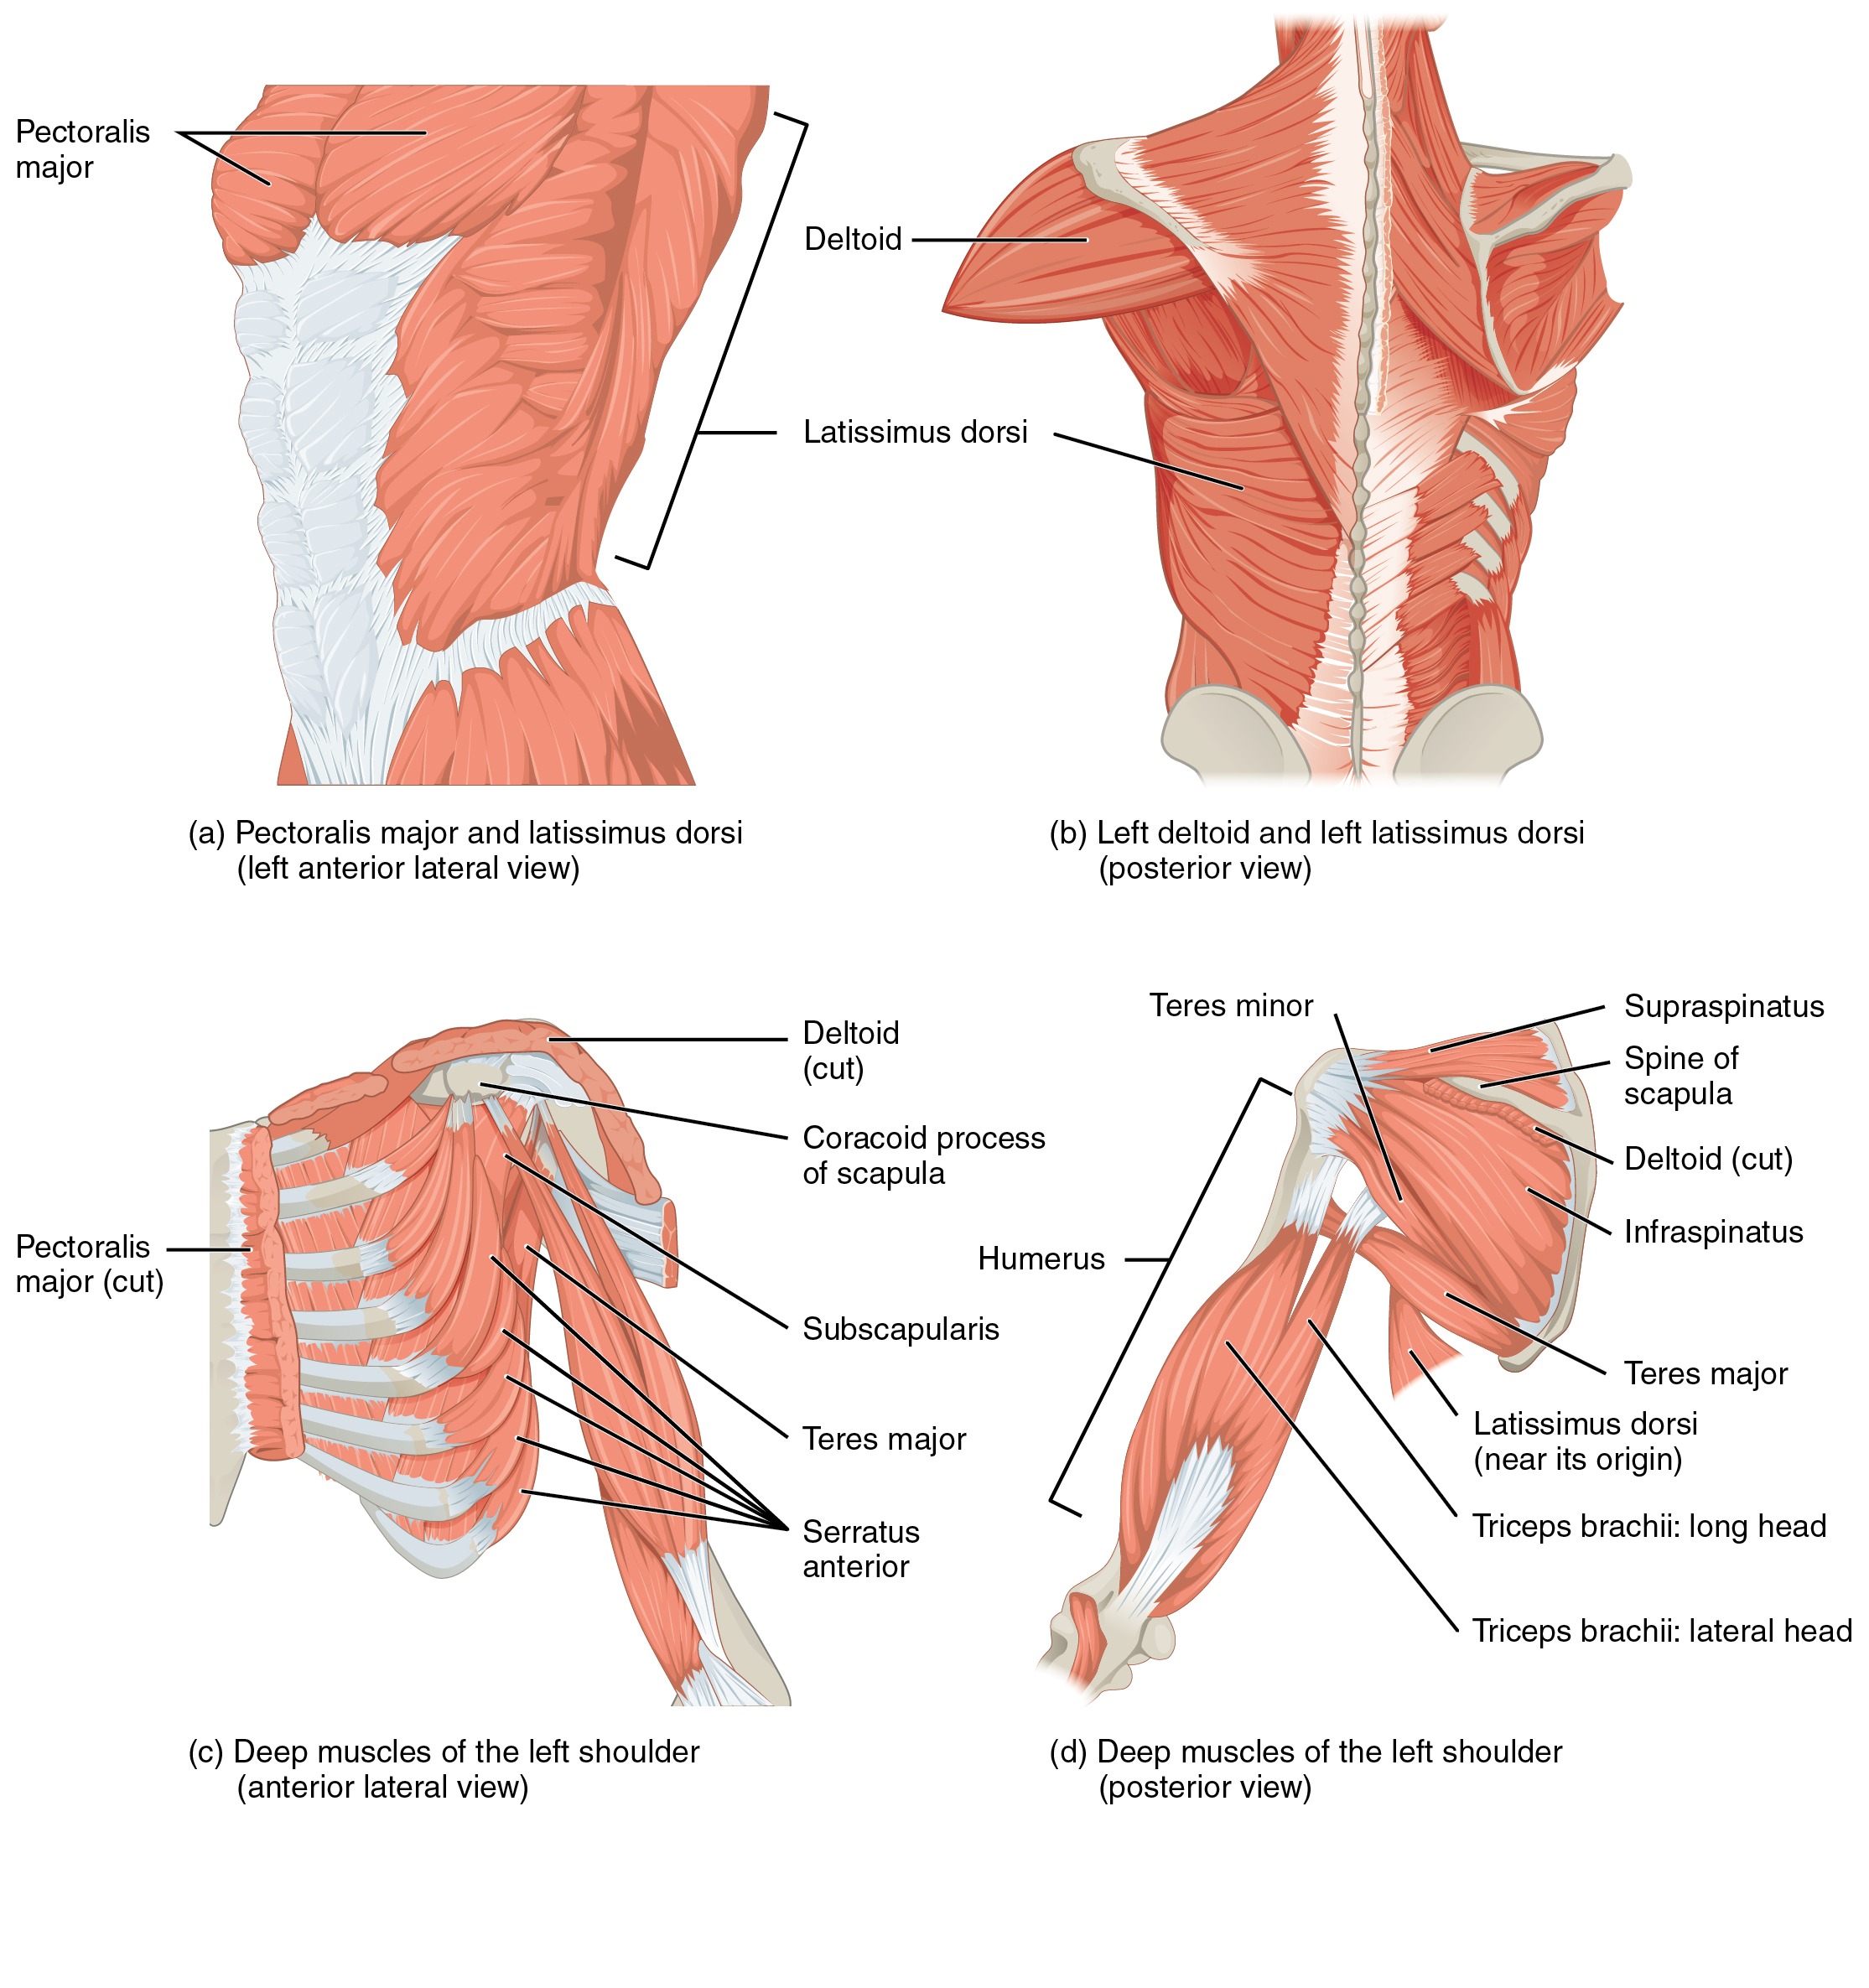 Unique Deltoid Picture Vignette - Anatomy Ideas - yunoki.info